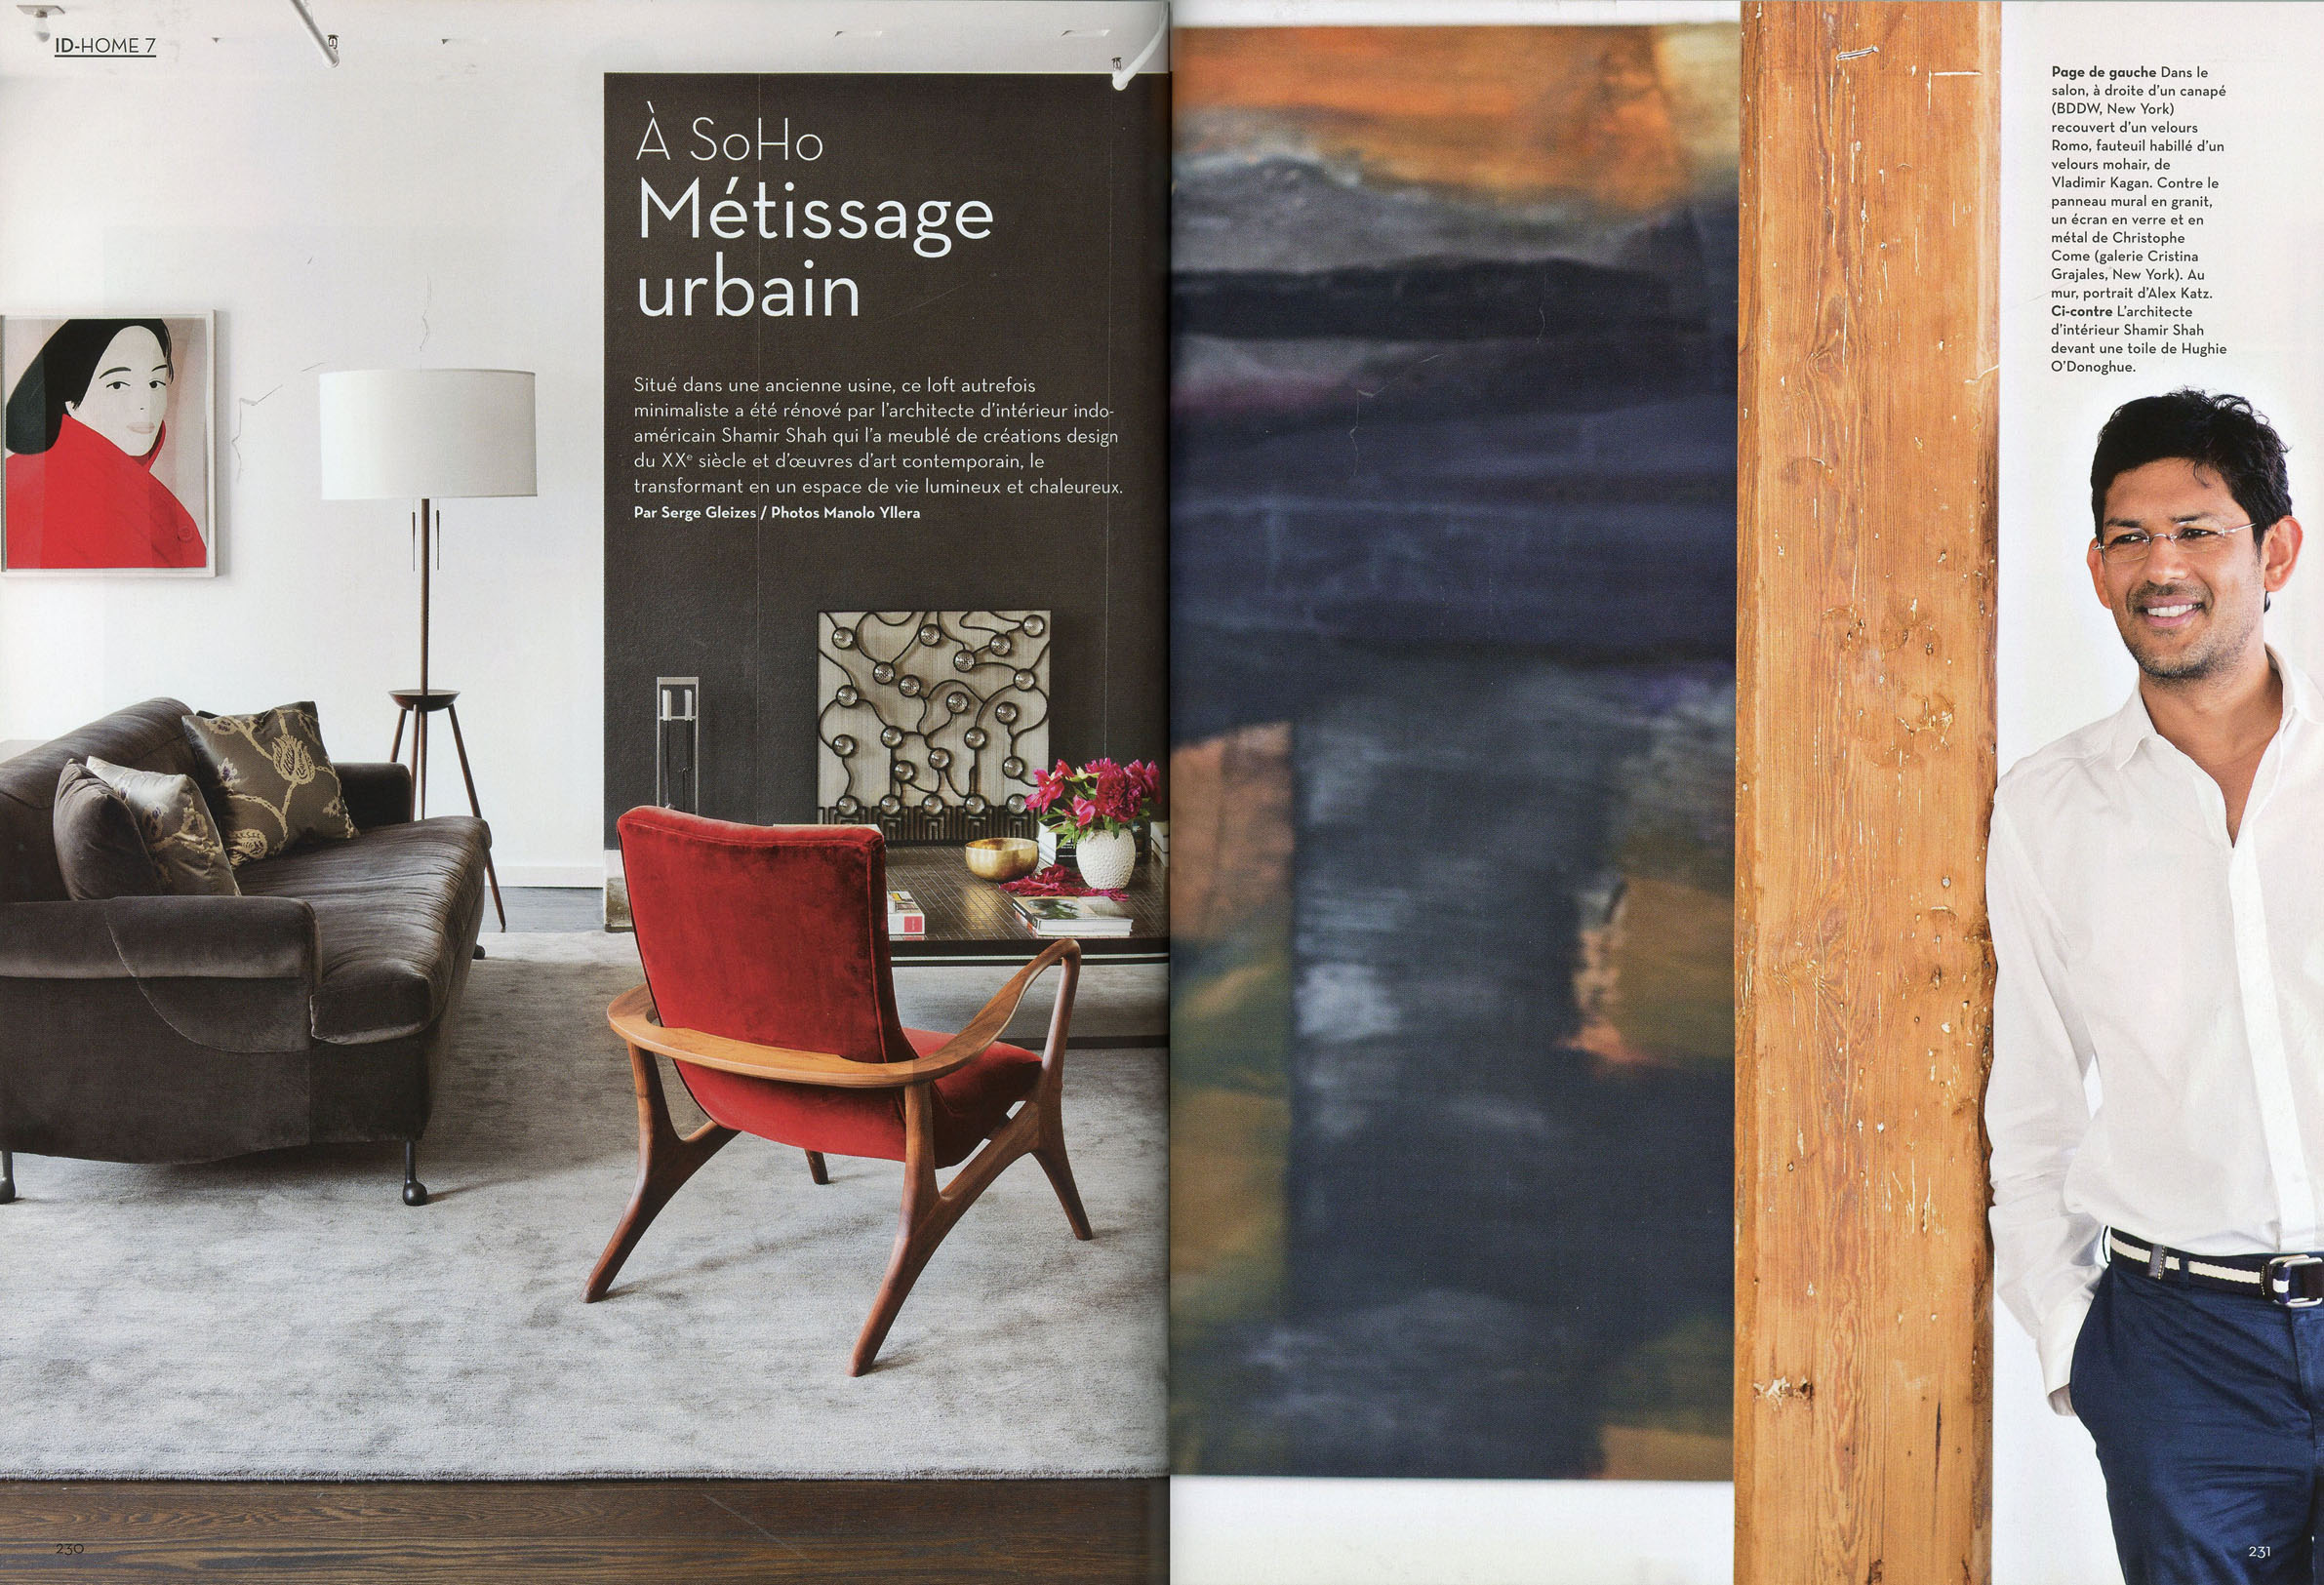 Pages from Ideat_2014-2.jpg